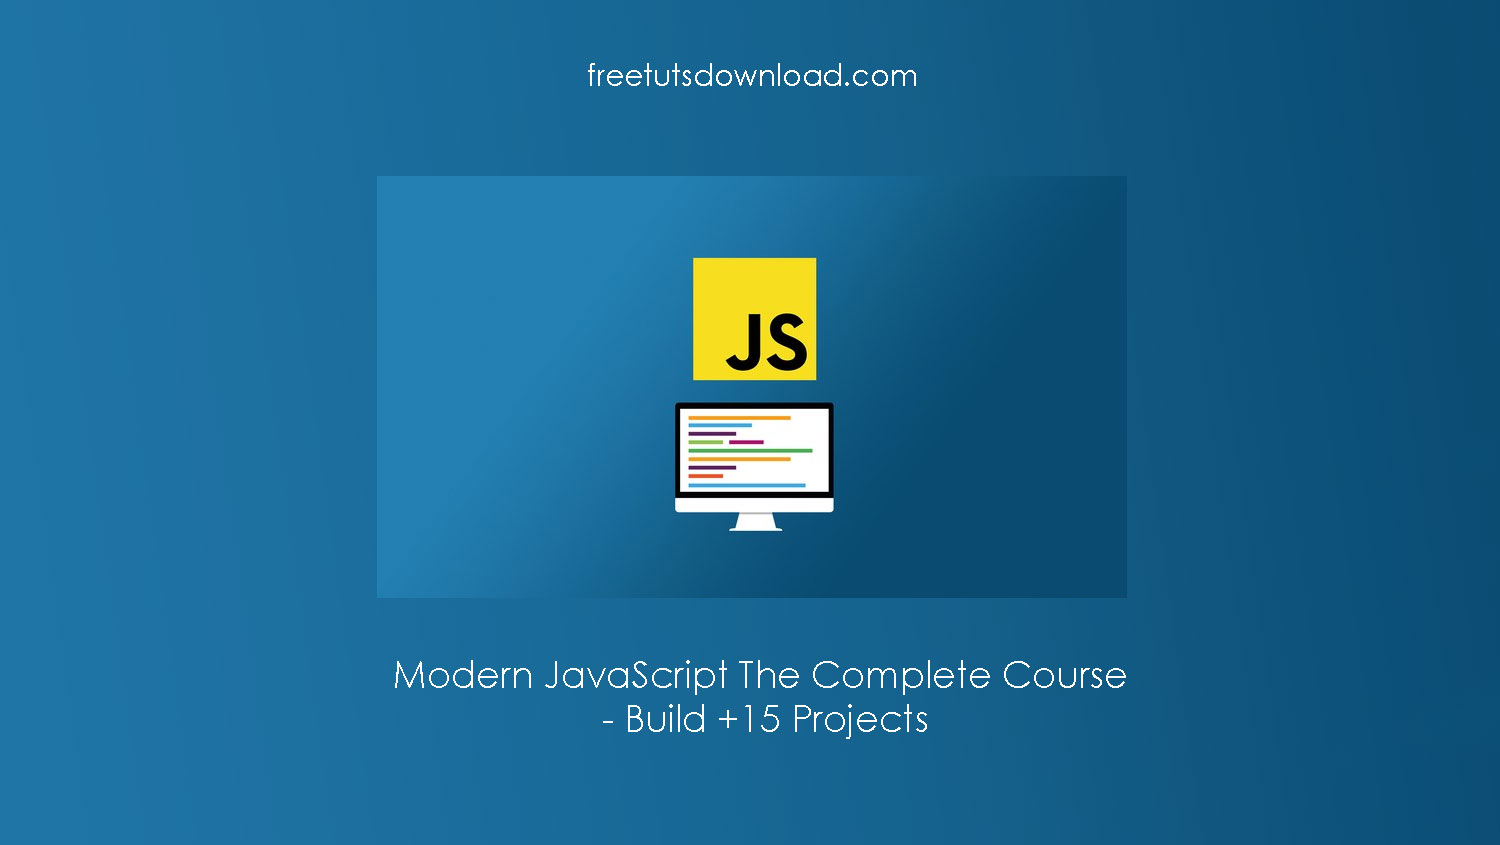 Modern JavaScript The Complete Course - Build +15 Projects